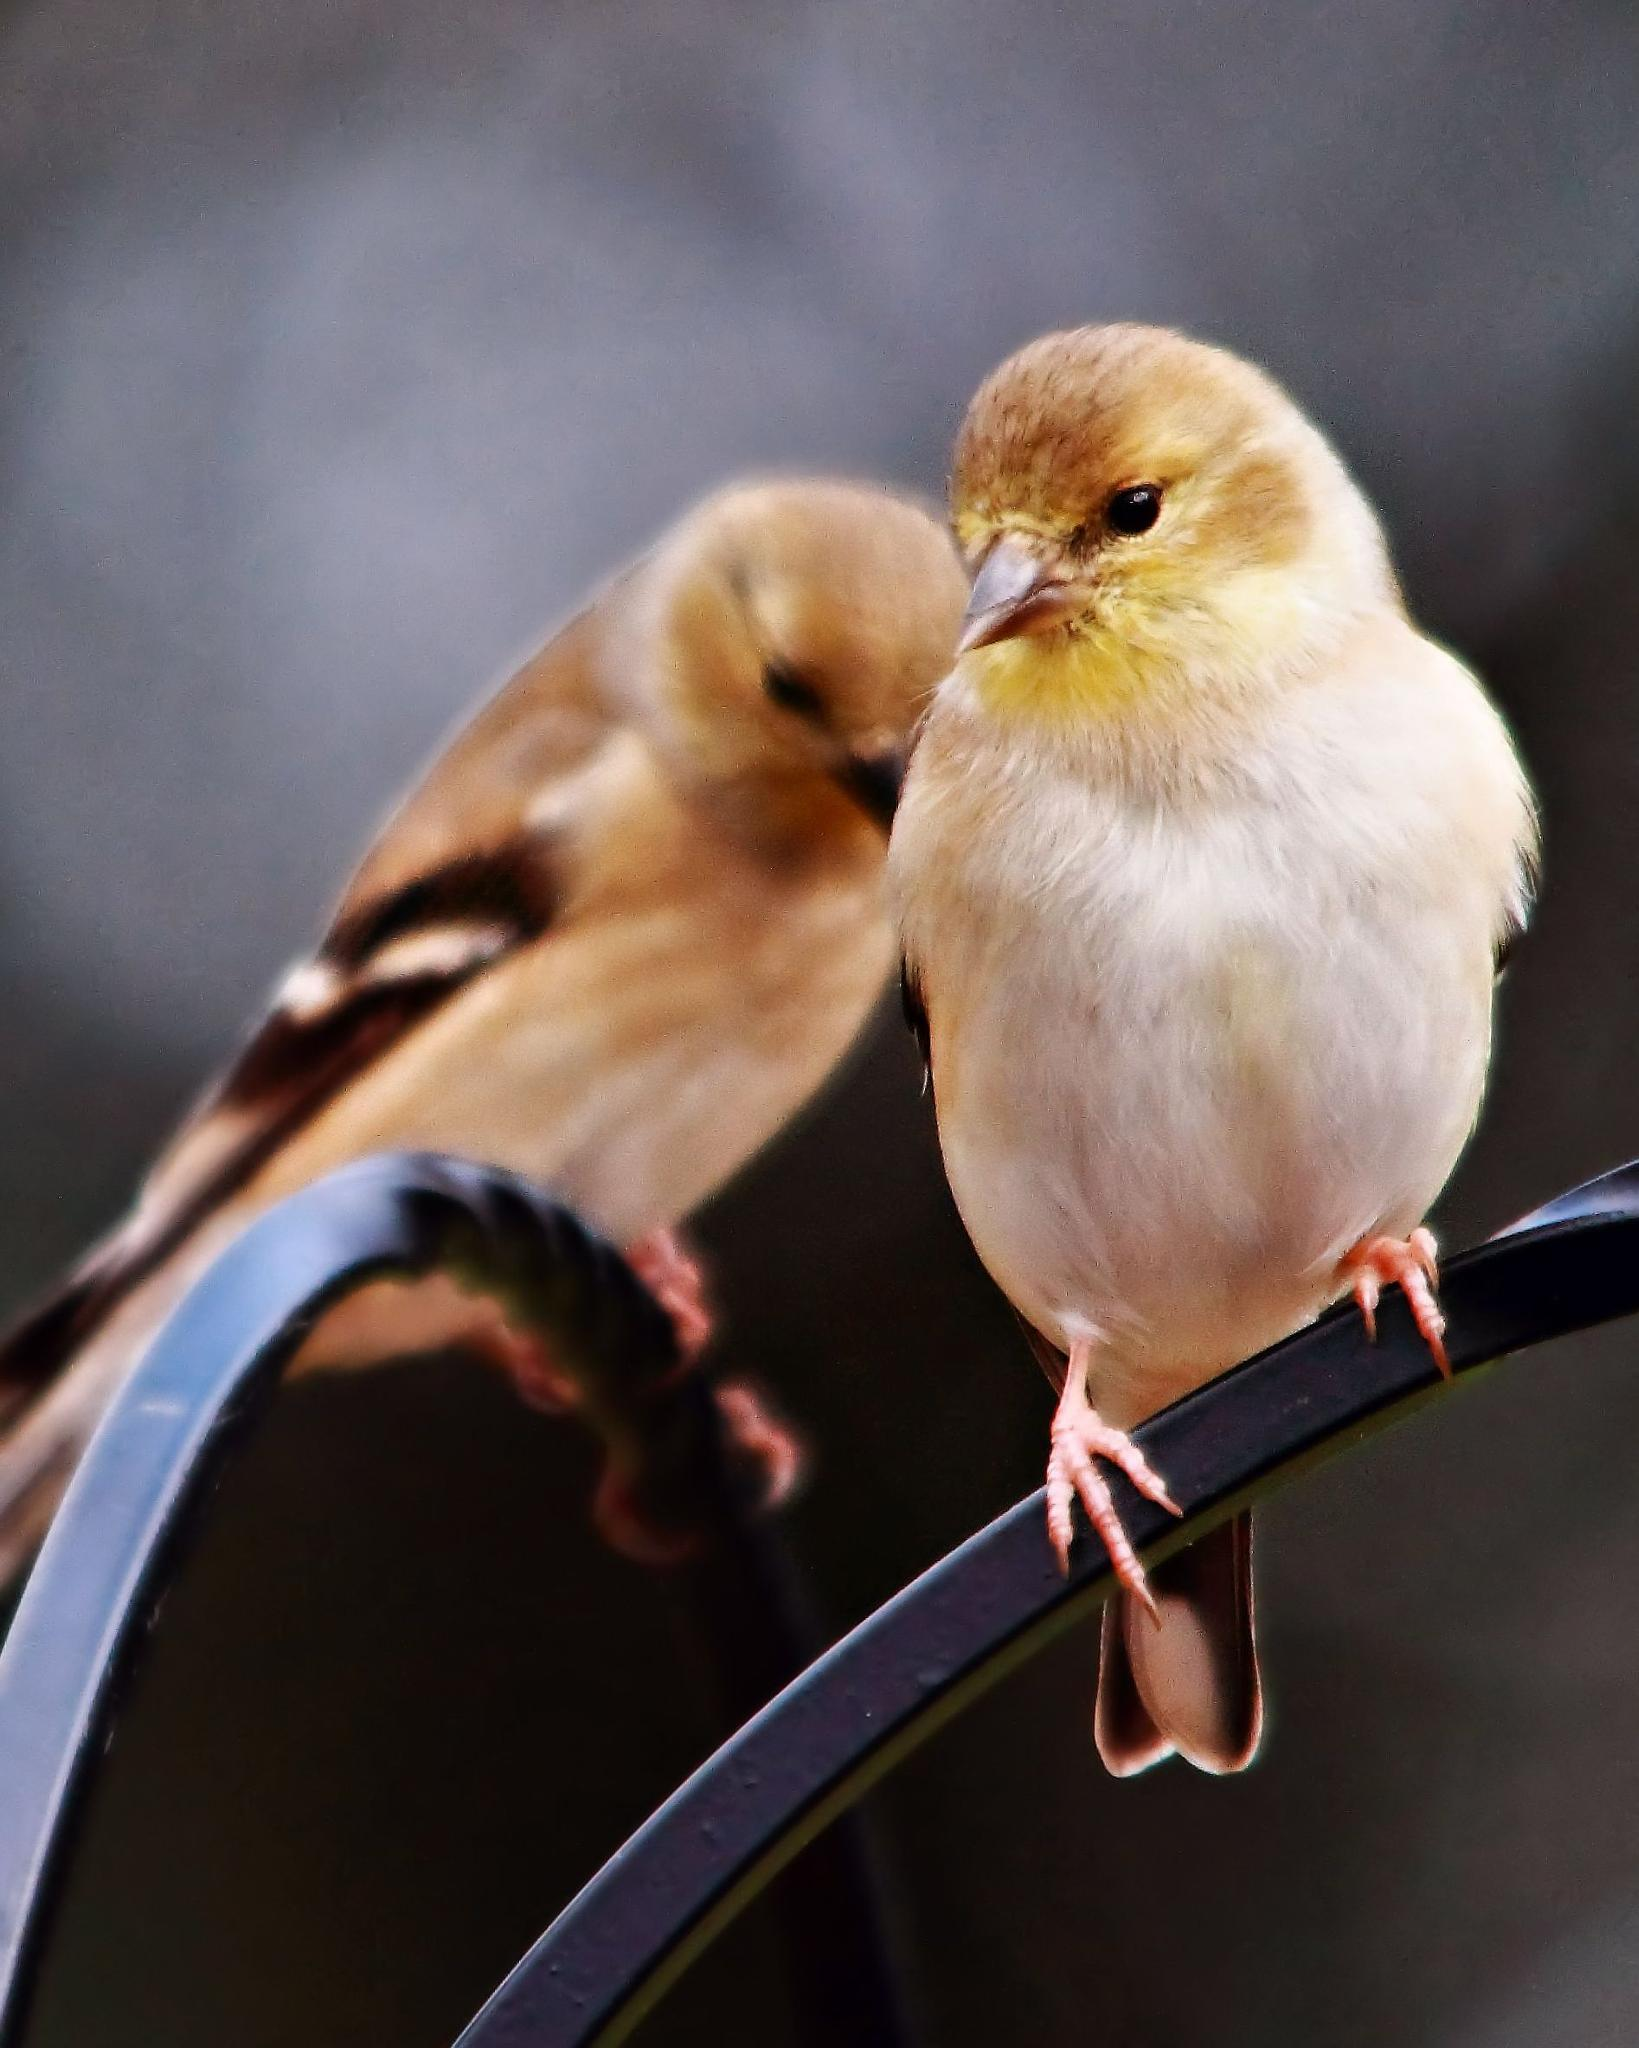 American Goldfinches by Maxie